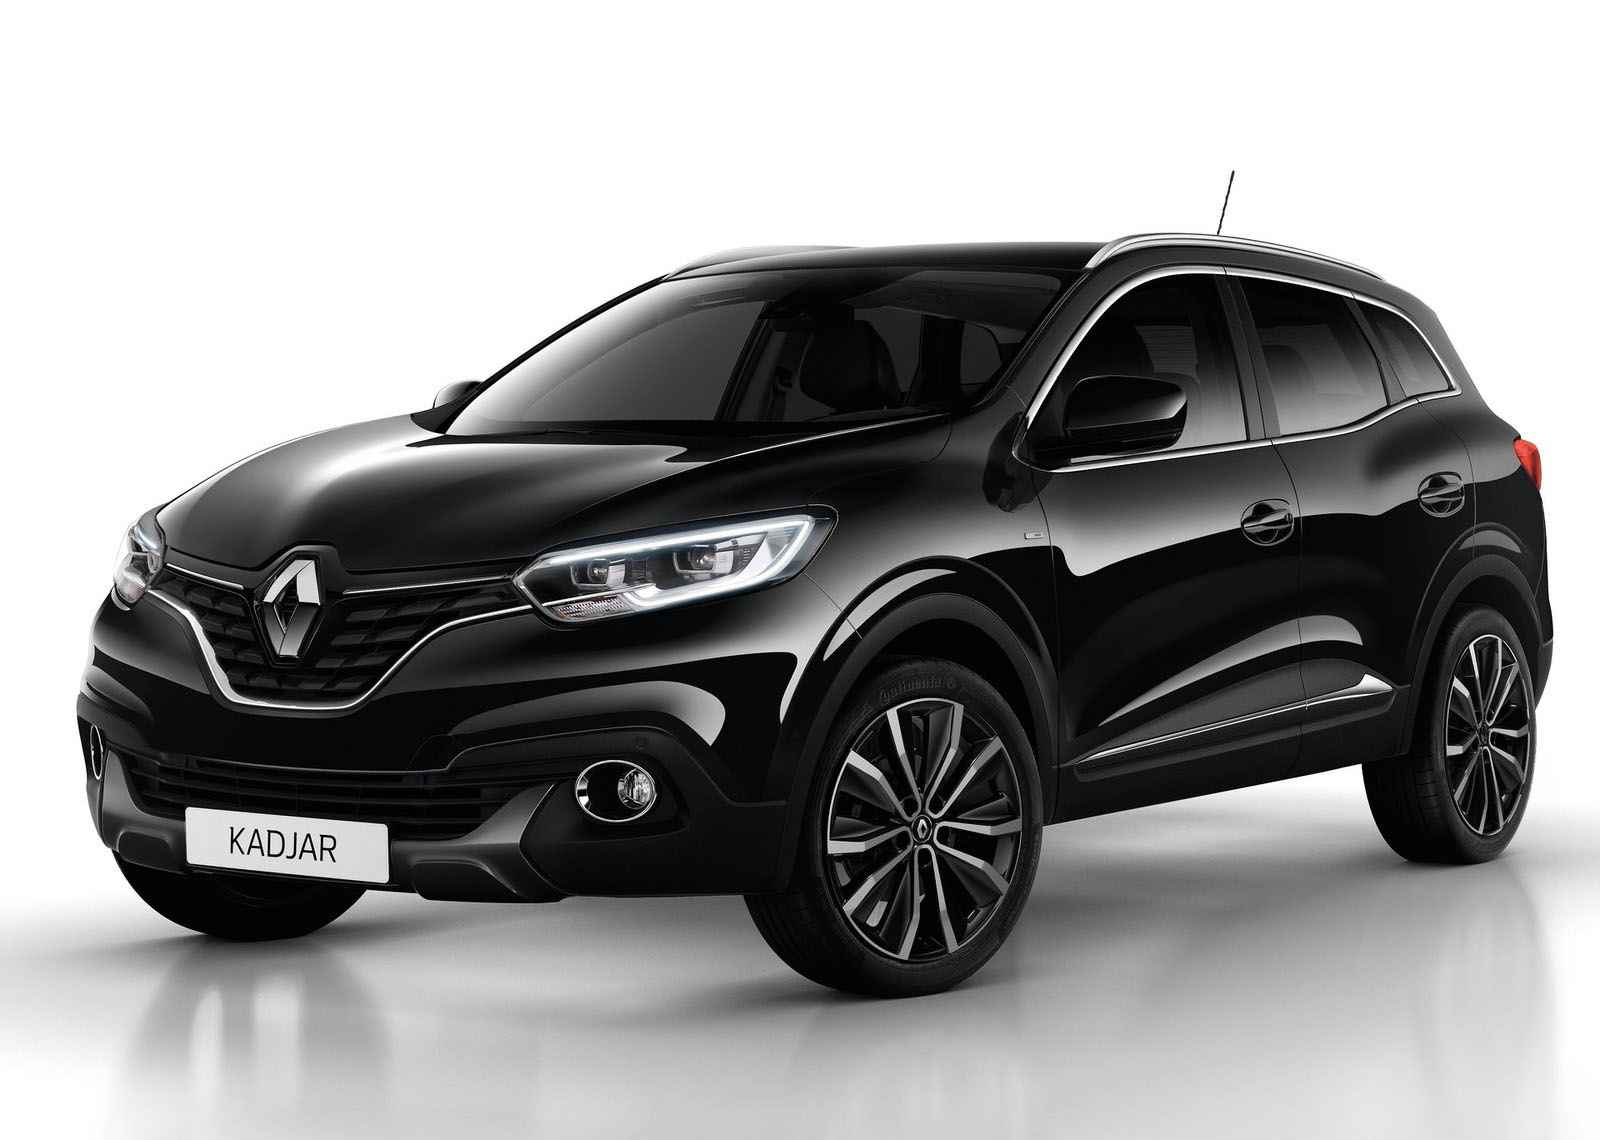 renault kadjar zellikleri ve fiyat uygun ta t. Black Bedroom Furniture Sets. Home Design Ideas